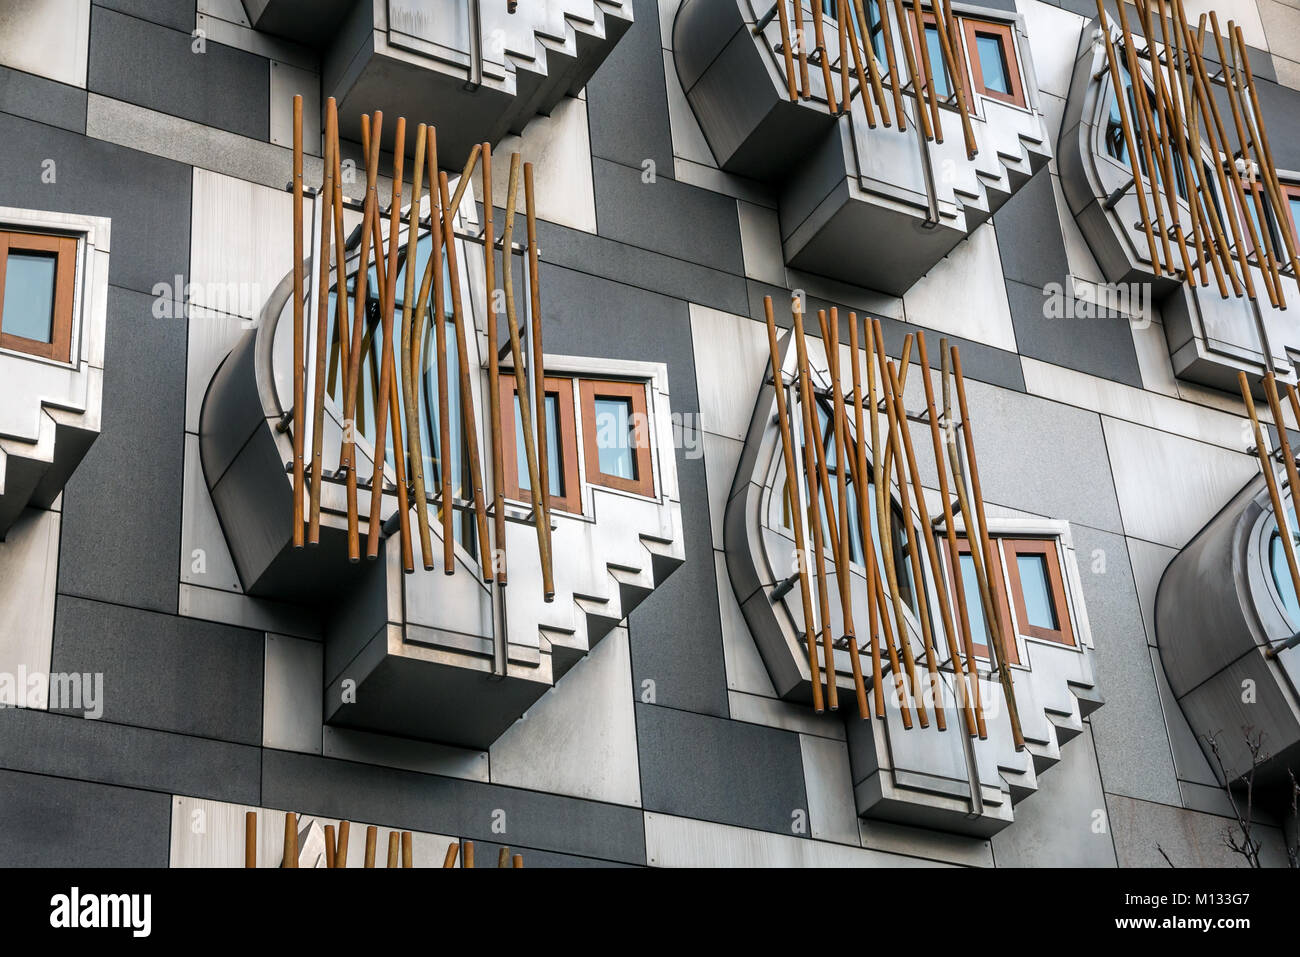 Think pods or contemplation spaces in modern architecture of Scottish parliament building by Enric Mirales, Holyrood, Stock Photo